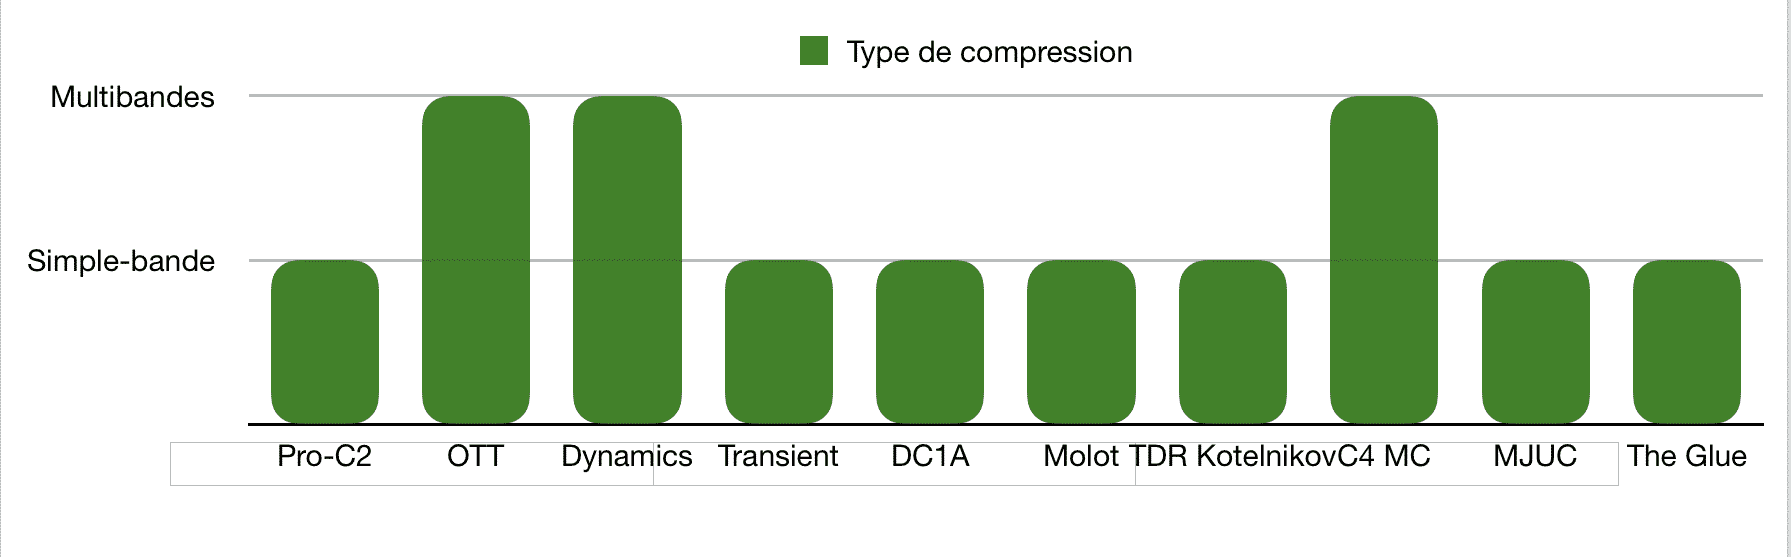 Type de compression - TOP 10 - Plugins - Compresseurs - WE COMPOZE